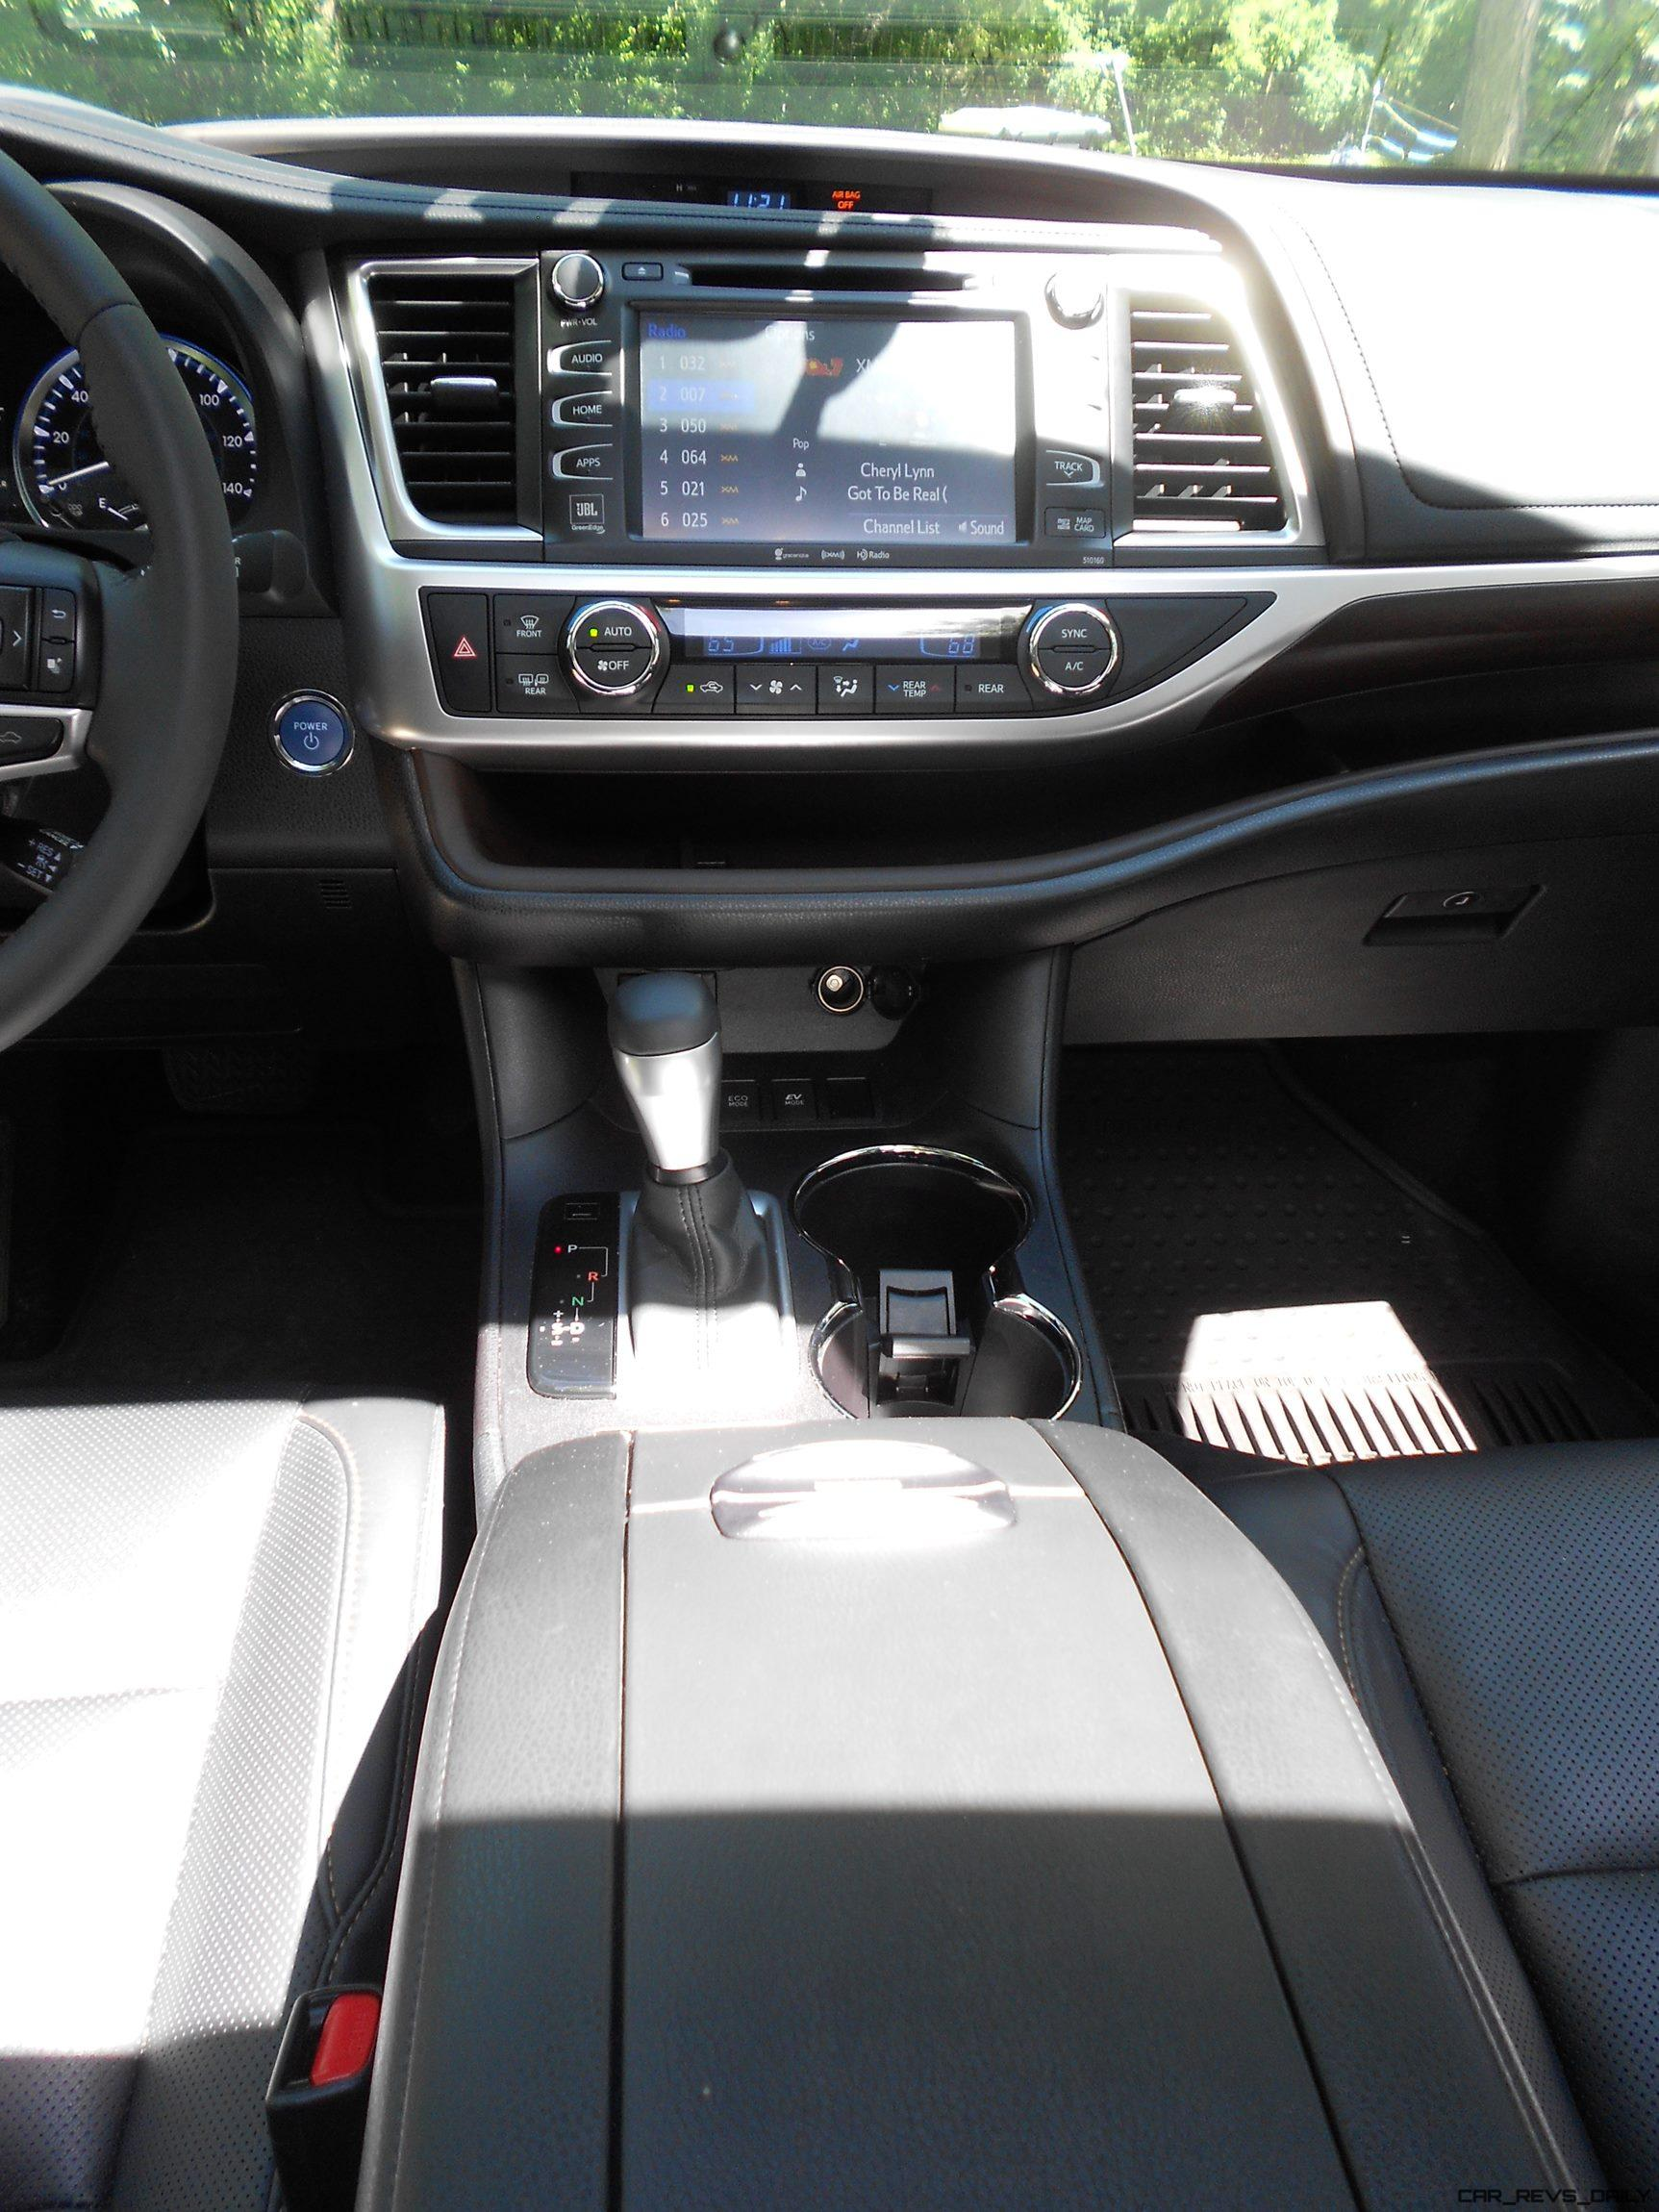 2016 Highlander Hybrid Interior 11